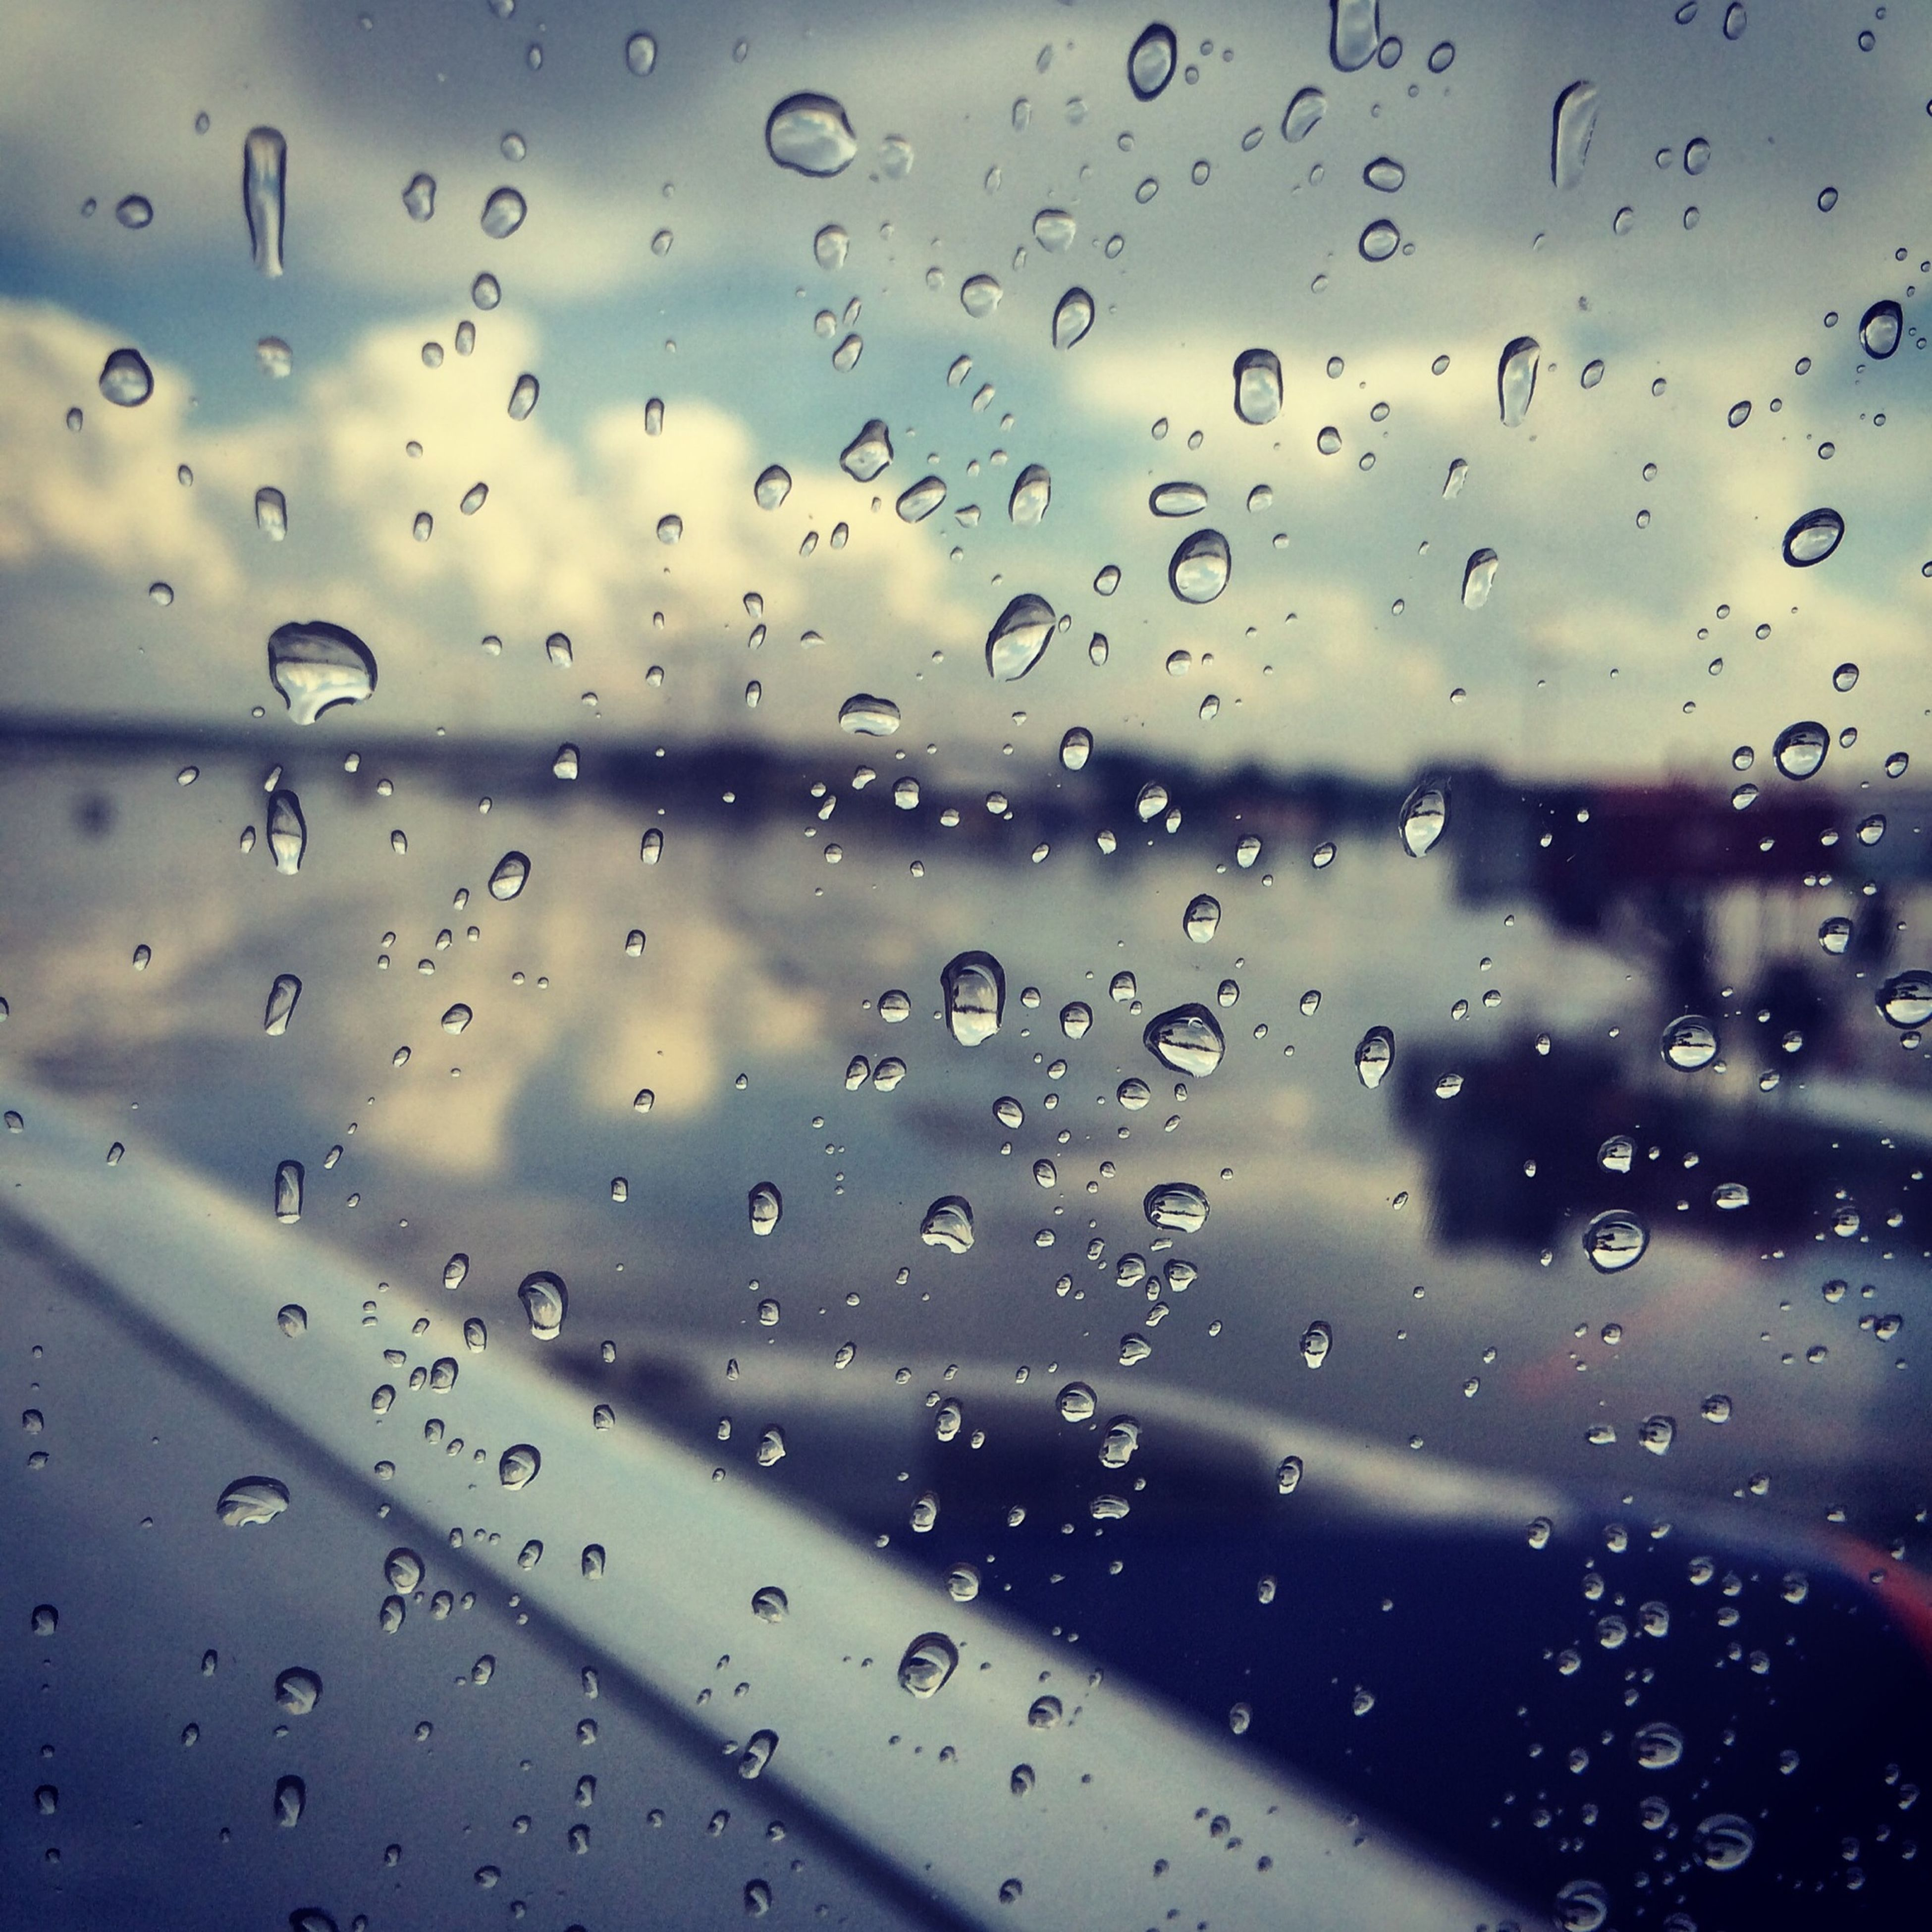 drop, wet, window, rain, transparent, water, glass - material, indoors, weather, raindrop, season, transportation, sky, mode of transport, vehicle interior, focus on foreground, full frame, backgrounds, car, glass